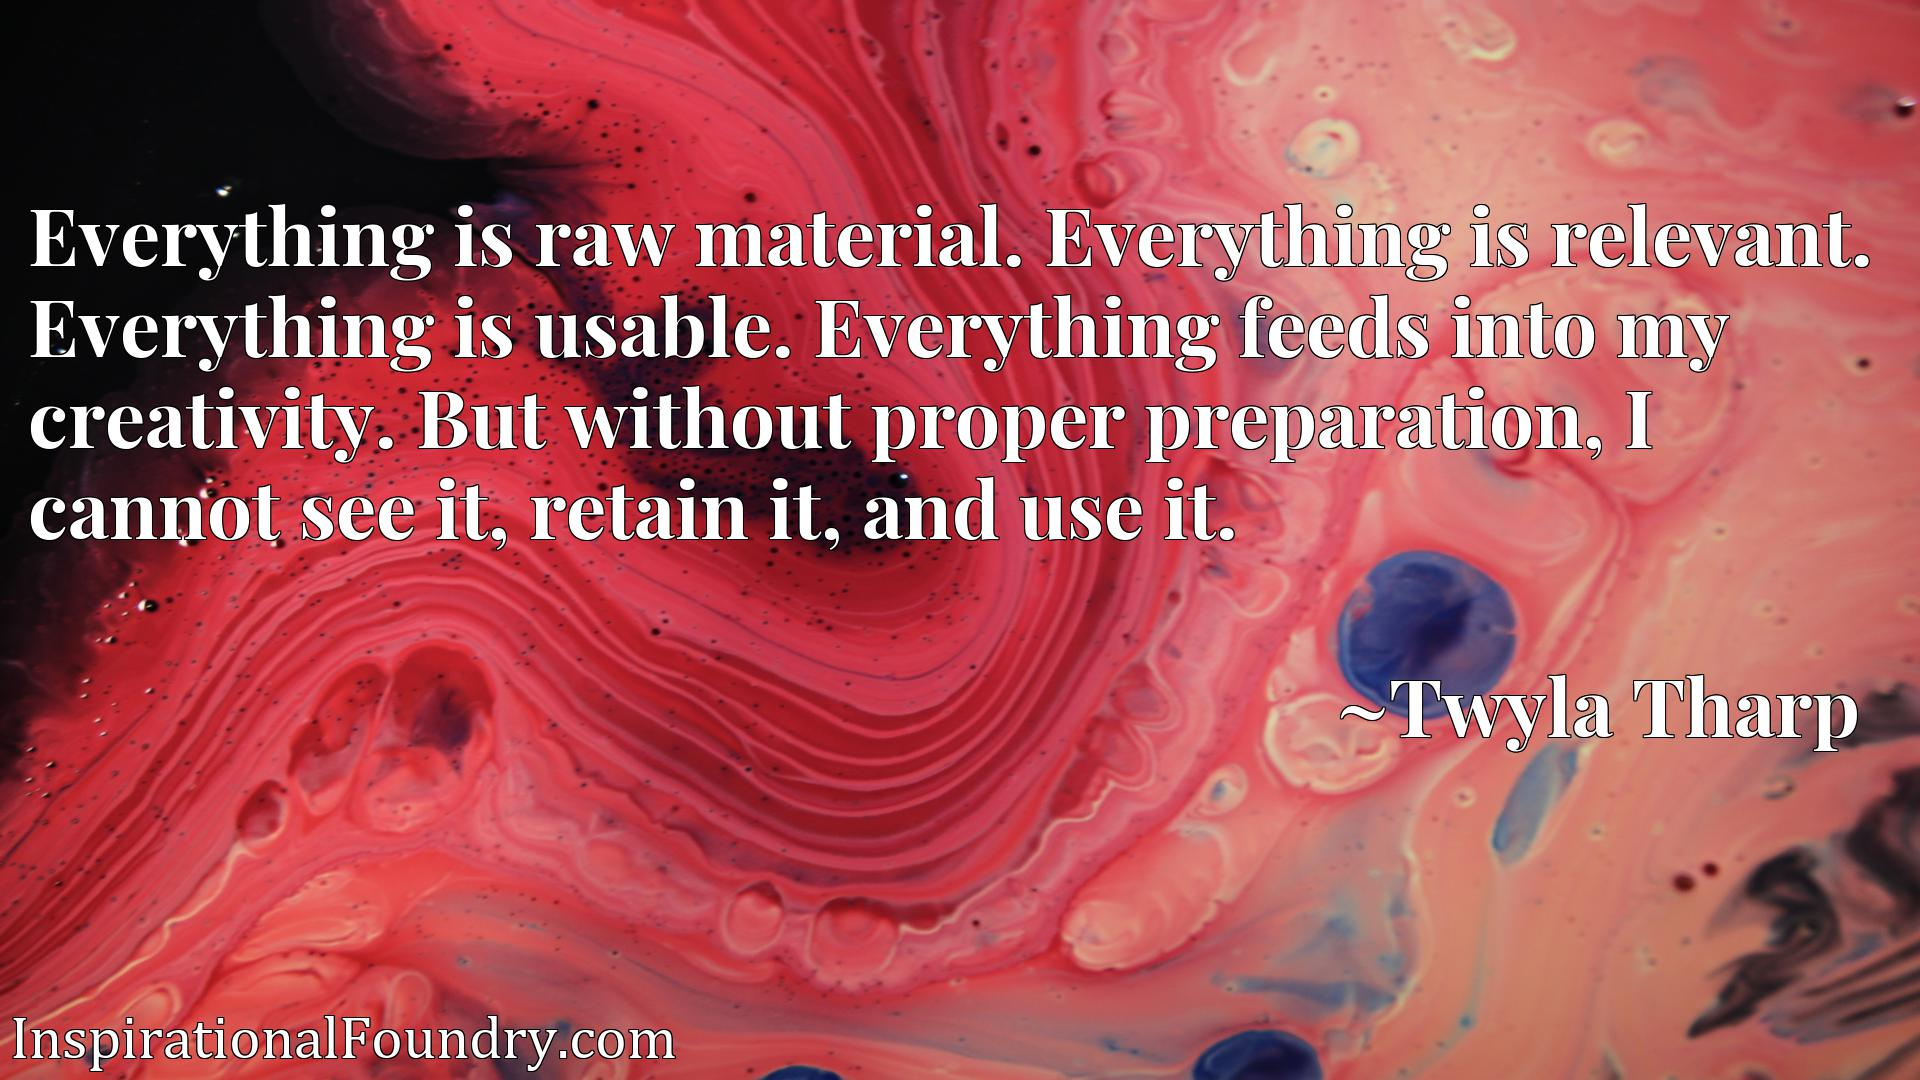 Everything is raw material. Everything is relevant. Everything is usable. Everything feeds into my creativity. But without proper preparation, I cannot see it, retain it, and use it.